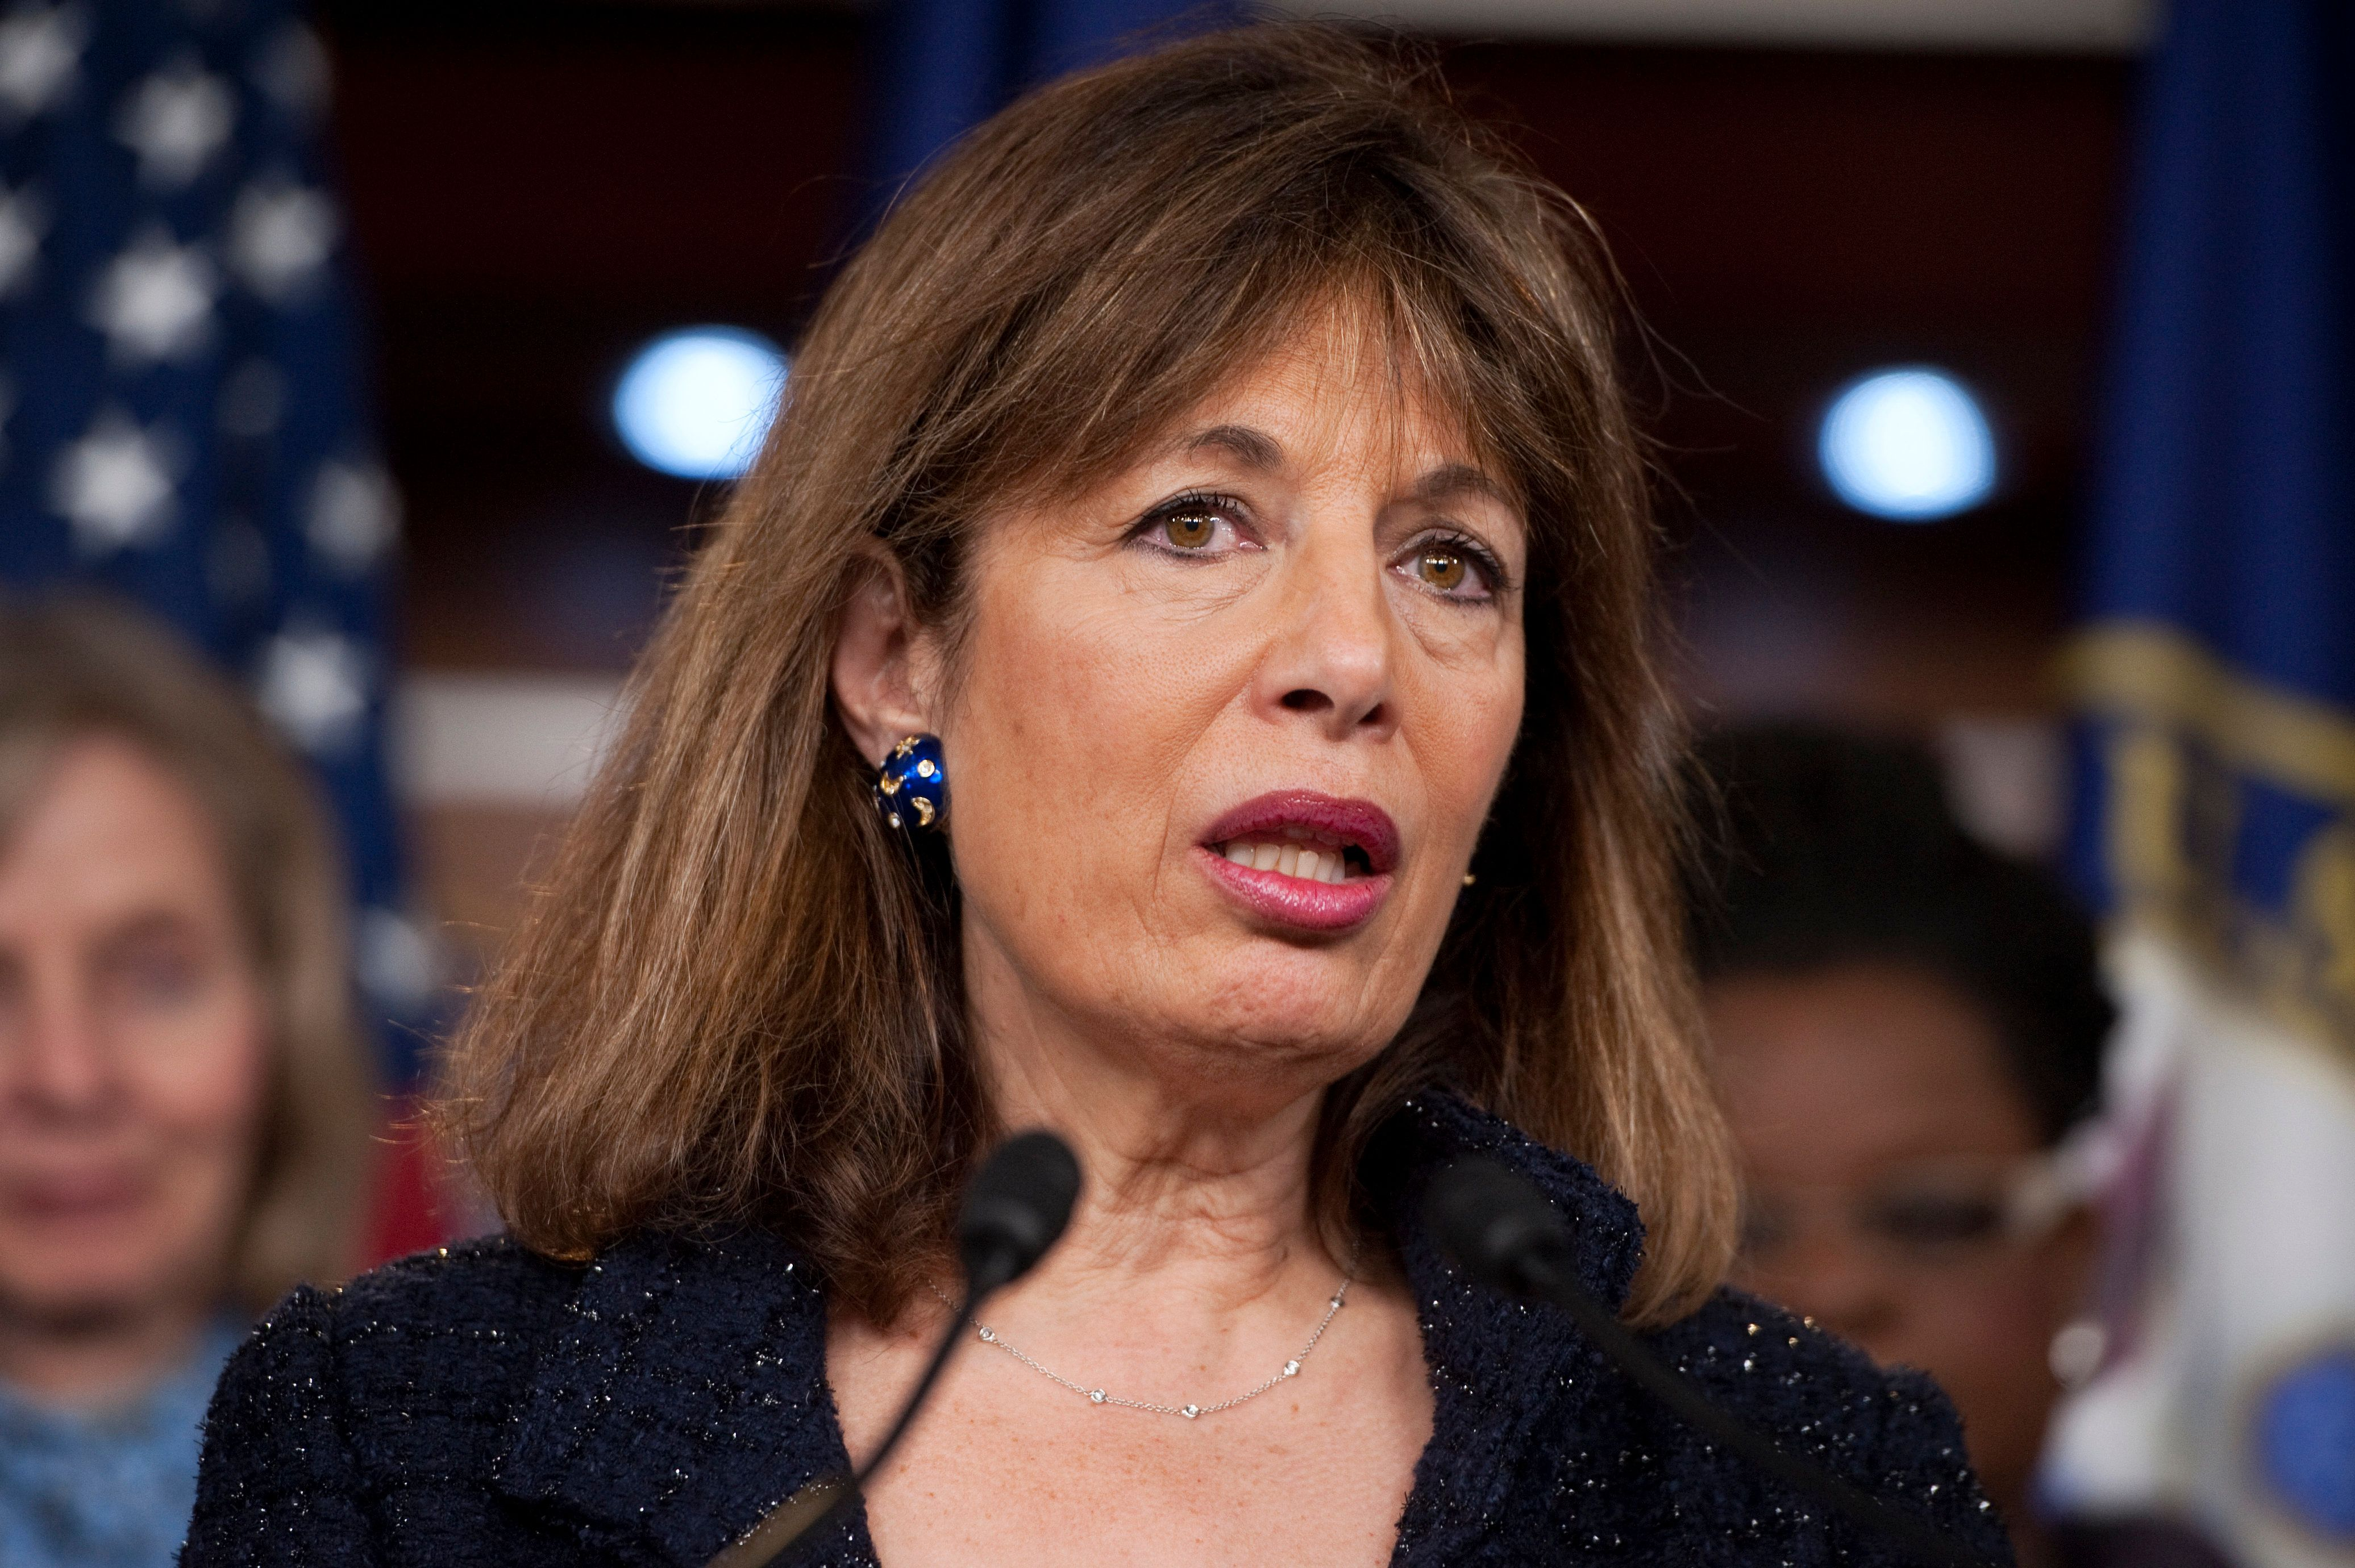 UNITED STATES - MARCH 20:  Rep. Jackie Speier, D-Calif., speaks at a news conference on the anniversary of the Affordable Care Act to discuss the benefits the law has had for American women. (Photo By Tom Williams/CQ Roll Call)